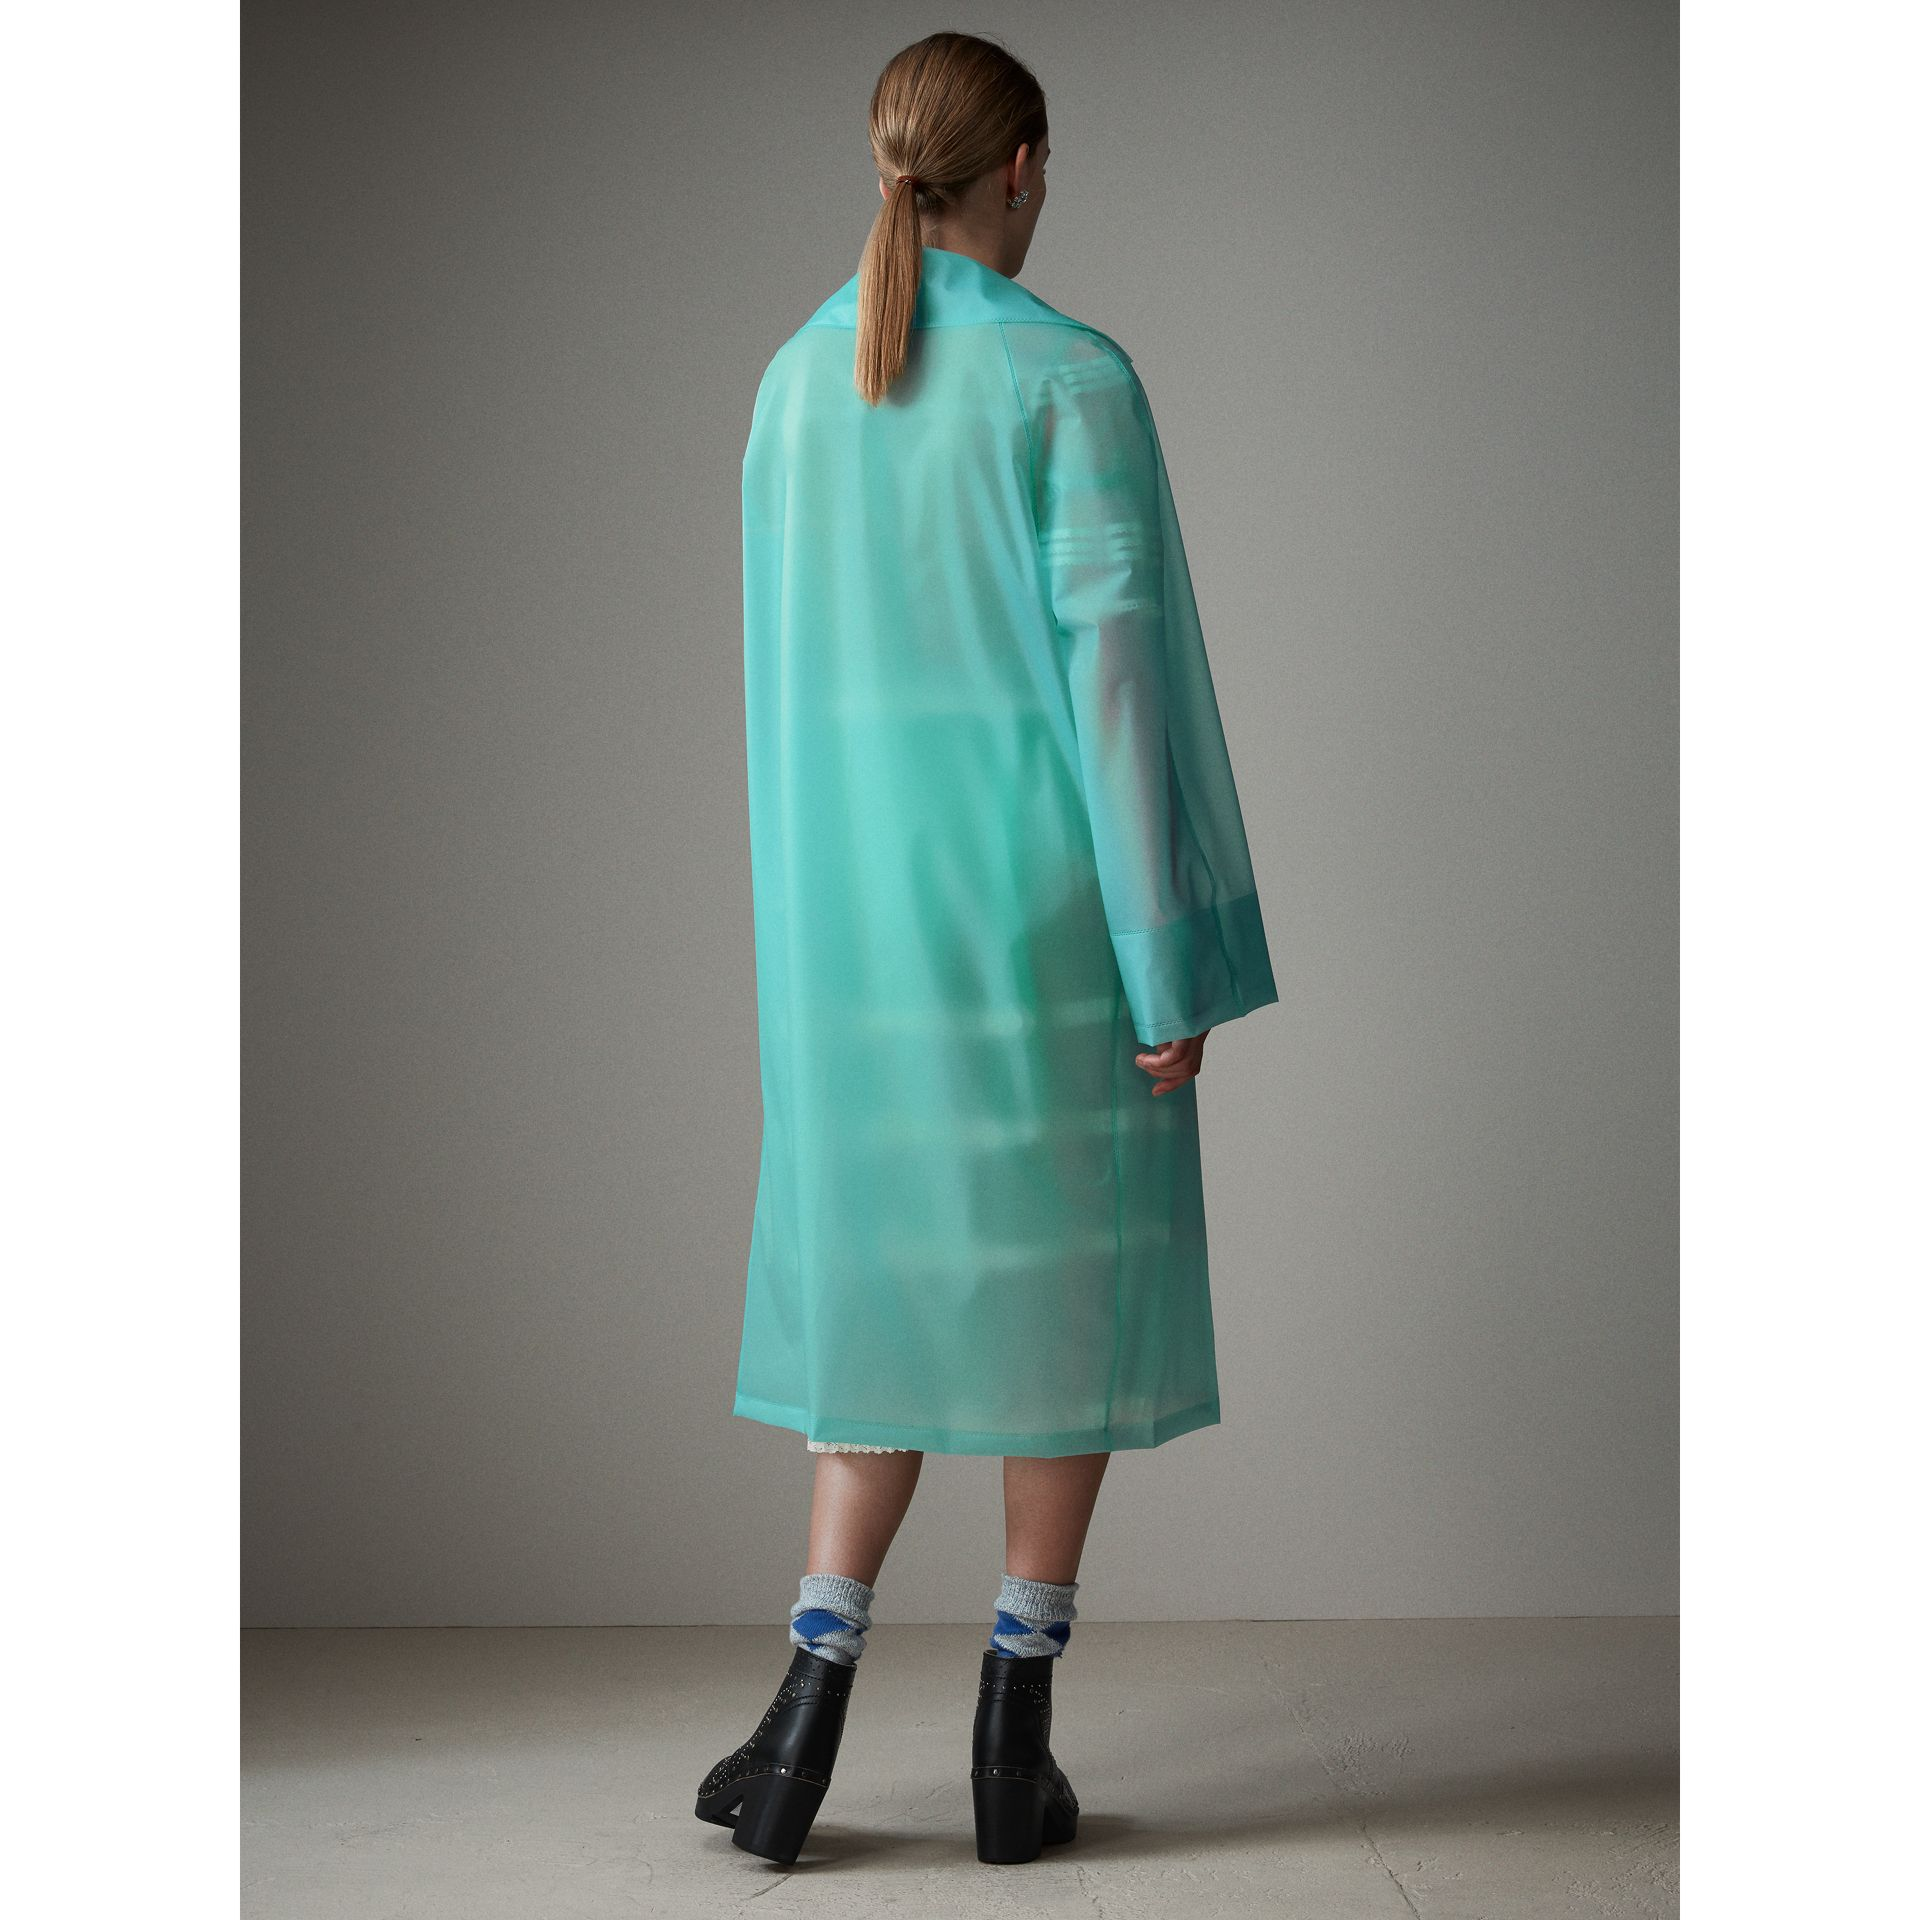 Soft-touch Plastic Car Coat in Turquoise - Women | Burberry Canada - gallery image 2